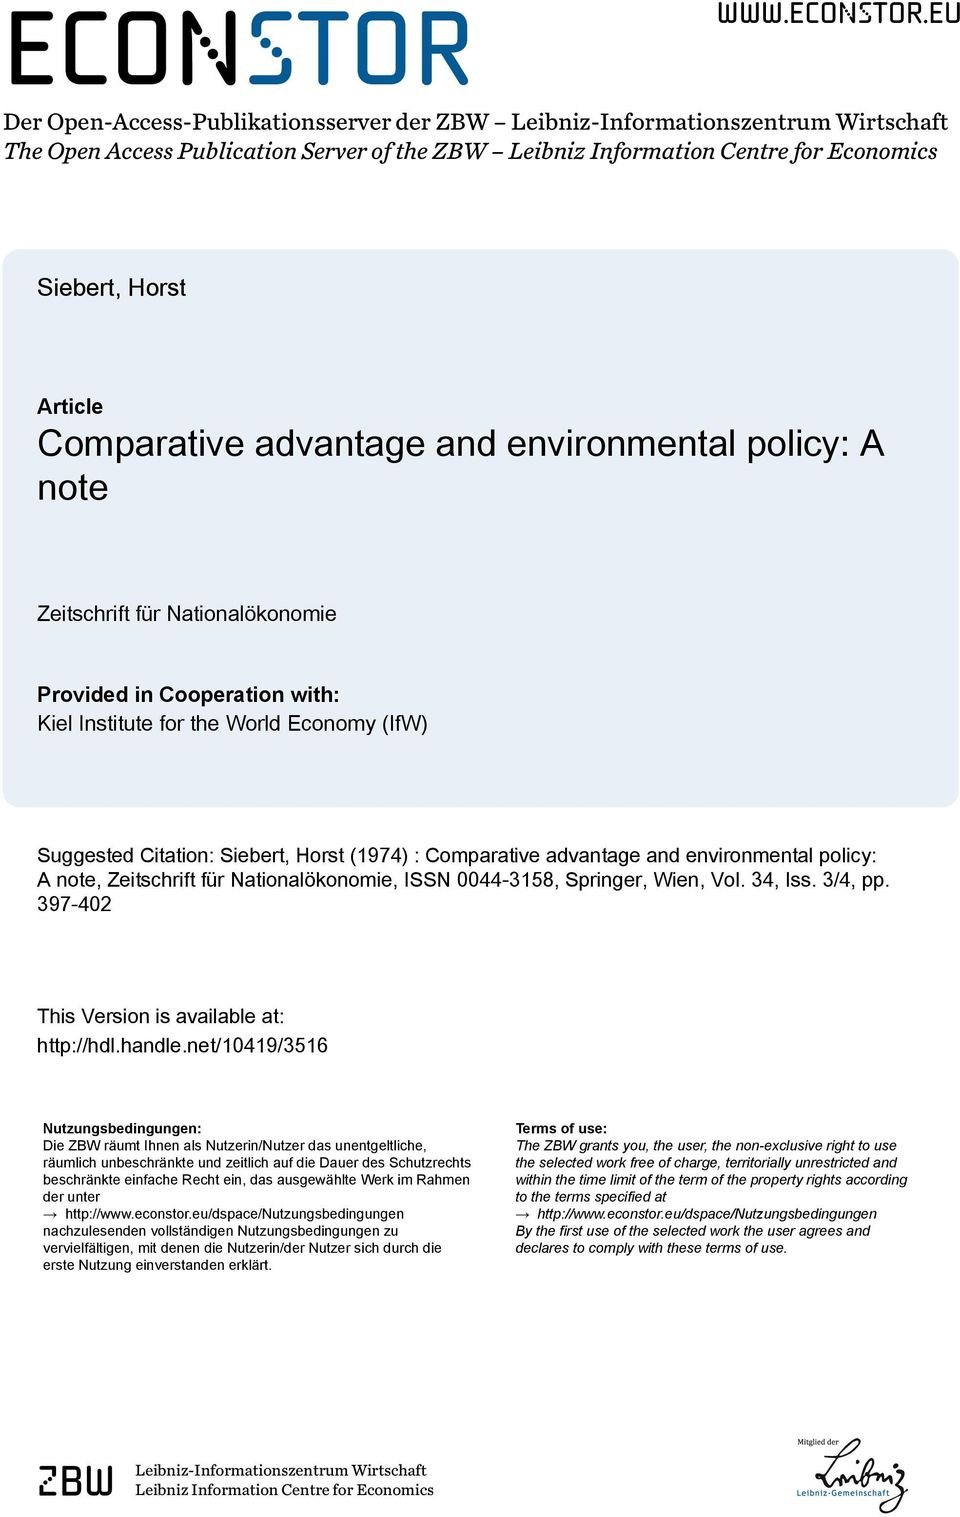 eu Der Open-Access-Publikationsserver der ZBW Leibniz-Informationszentrum Wirtschaft The Open Access Publication Server of the ZBW Leibniz Information Centre for Economics Siebert, Horst Article